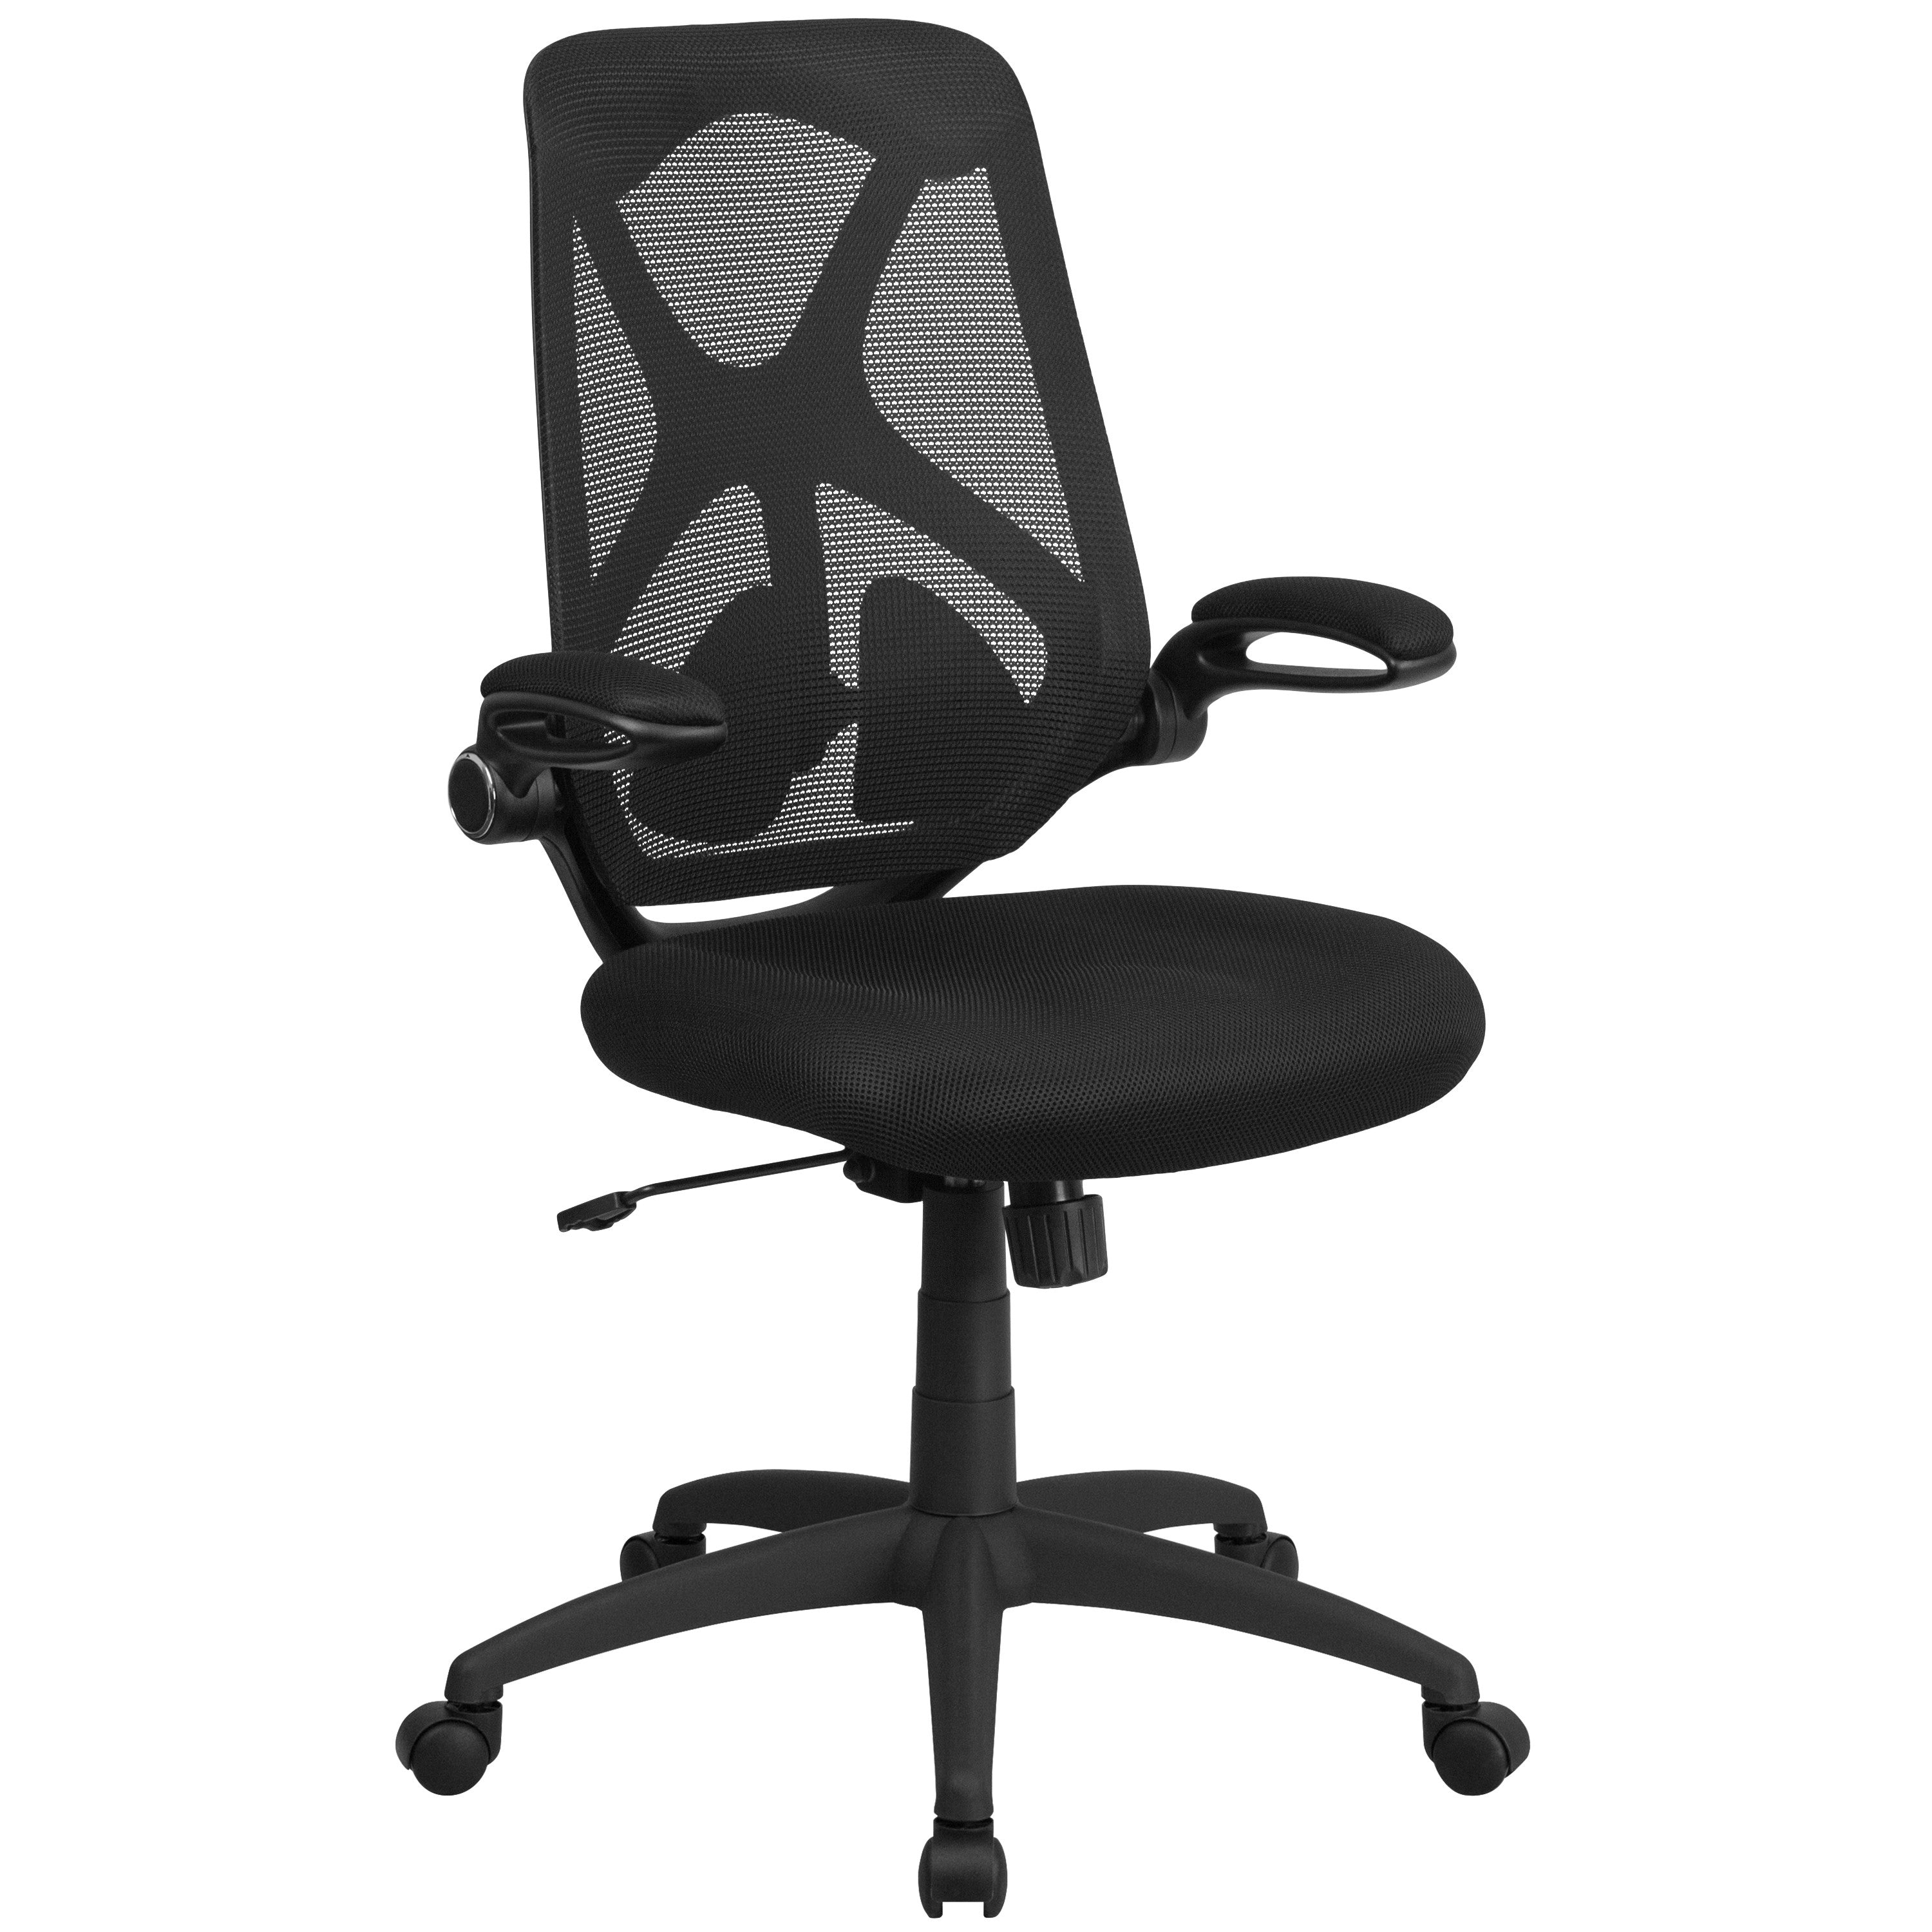 Desk stools are perfect for comfortable work best computer chairs - Relax In This Cozy Office Chair With Double Paddle Controls Mesh Office Chairs Can Keep